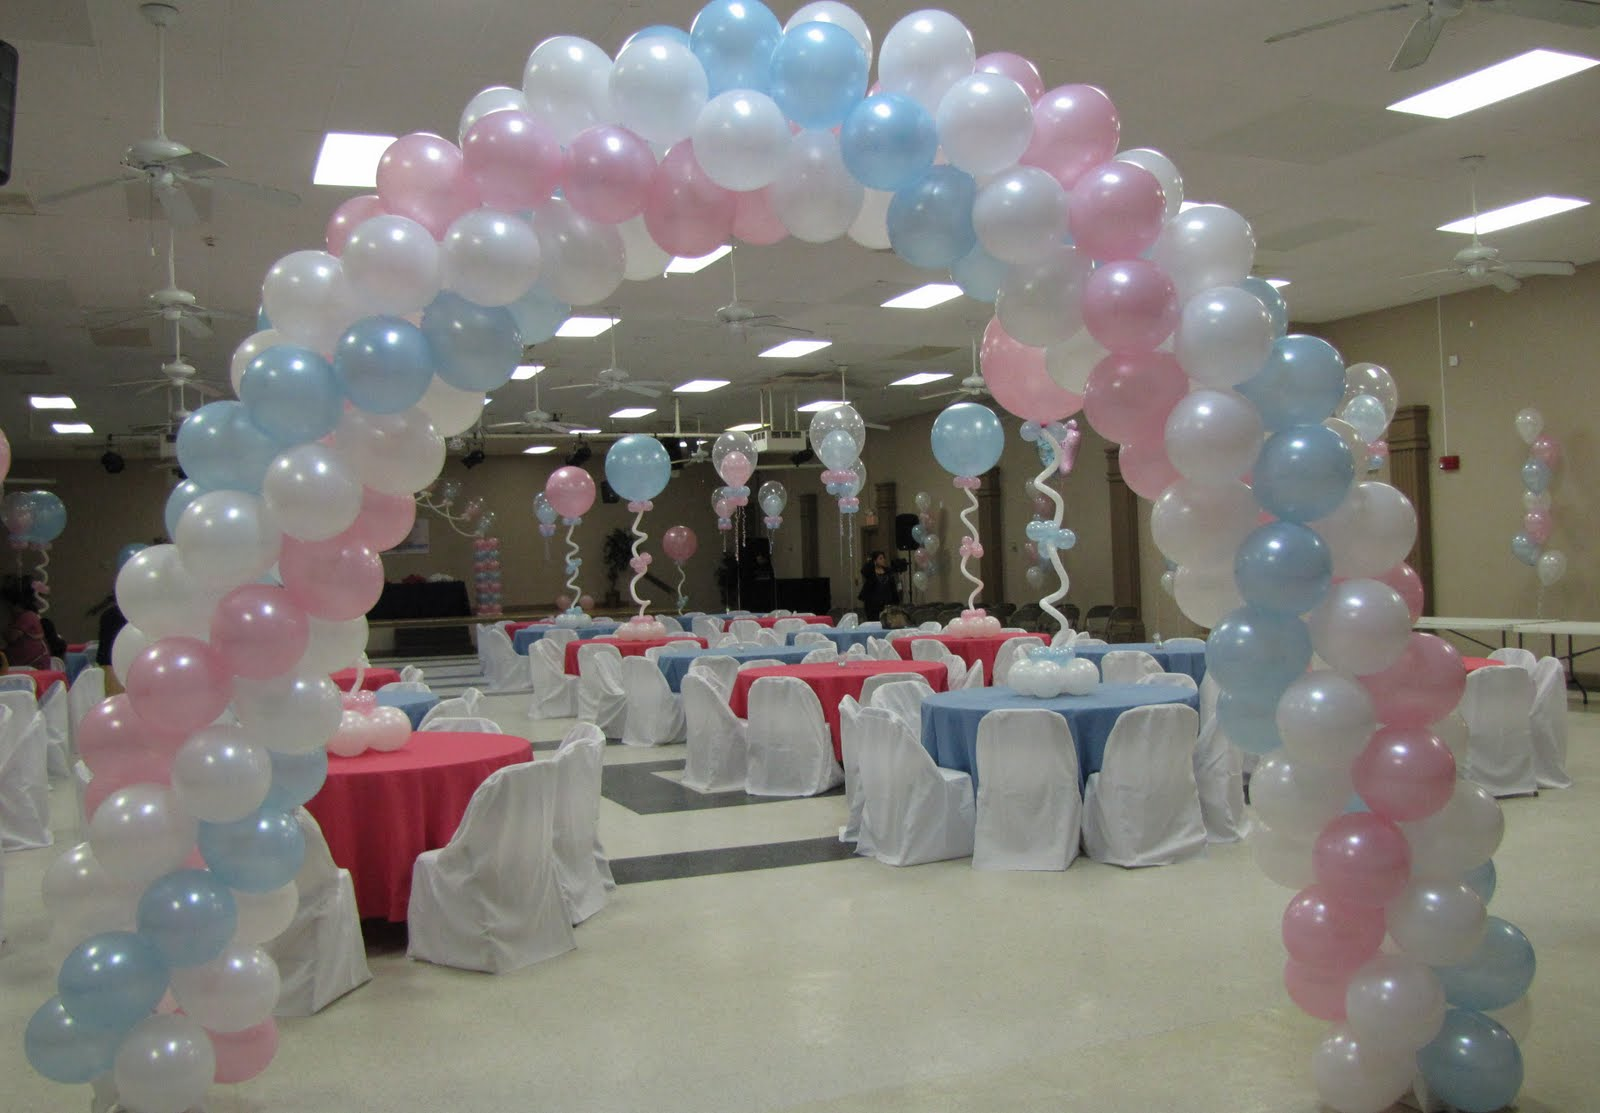 Balloons decorations for baby shower party favors ideas for Baby shower decoration ideas with balloons